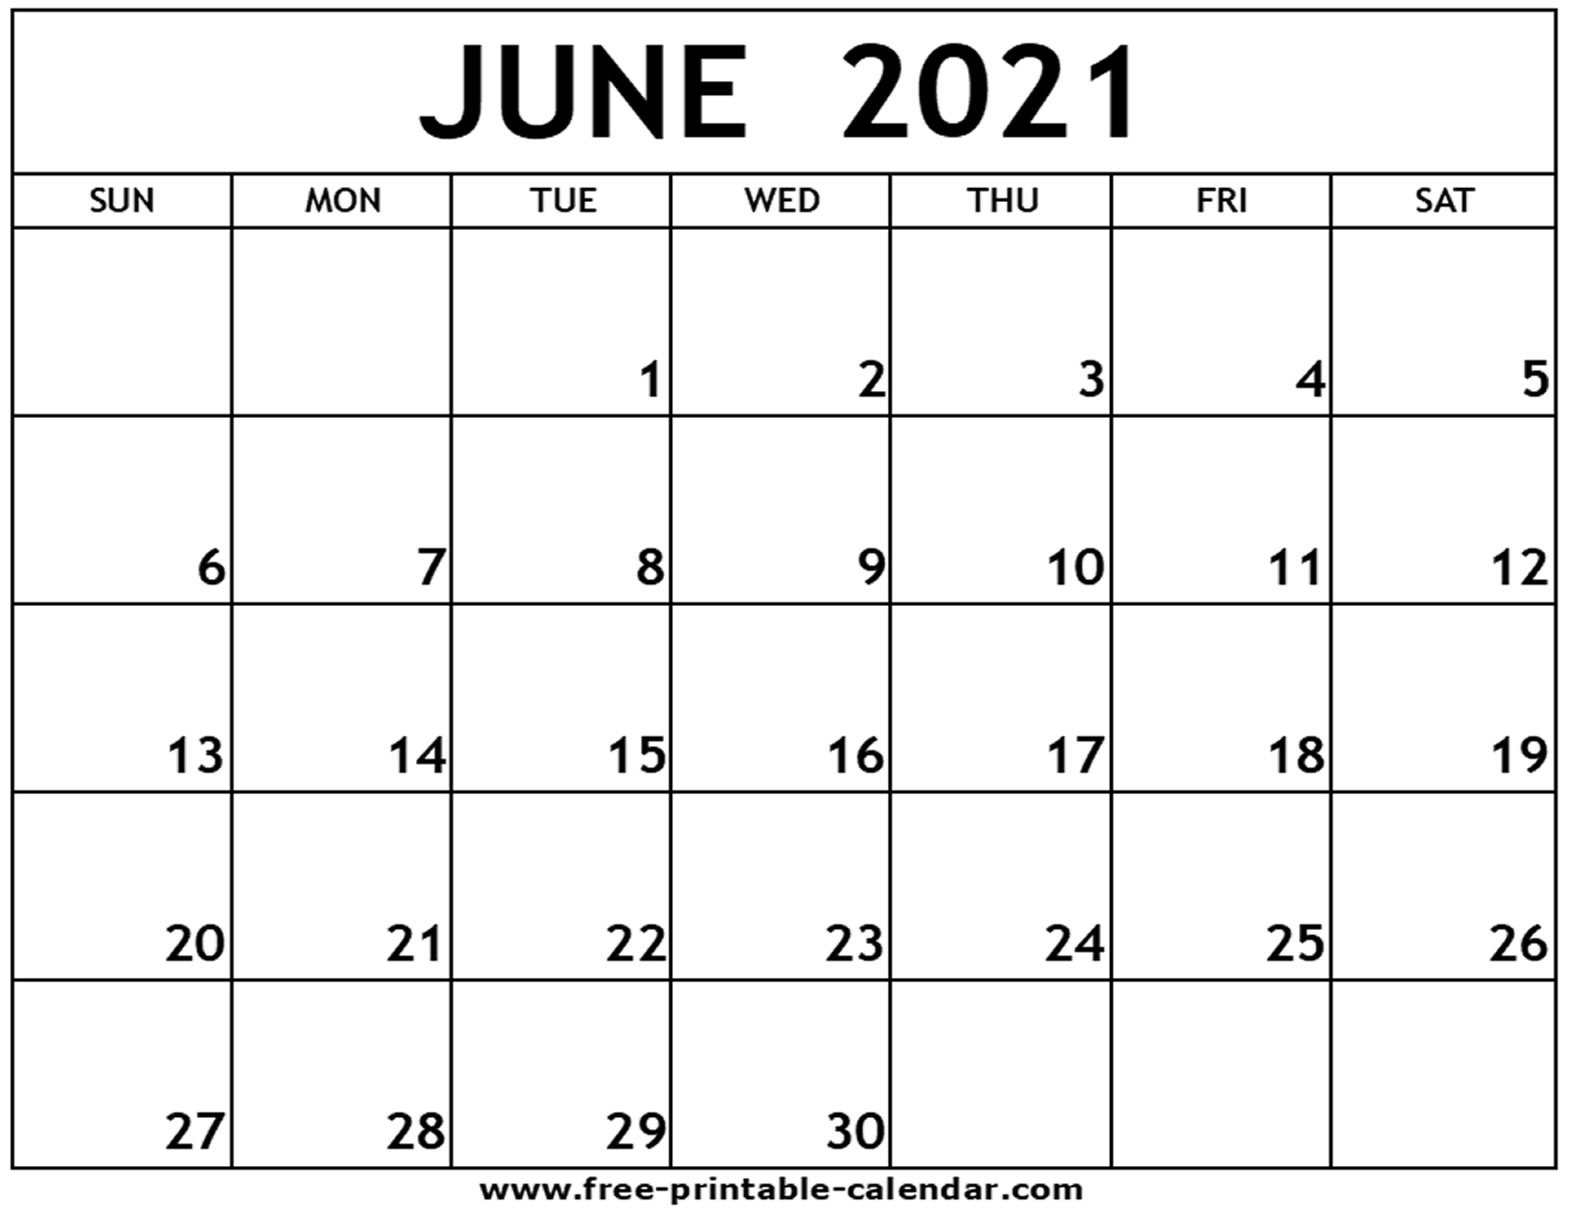 Catch Calendar Page 2021 June And July